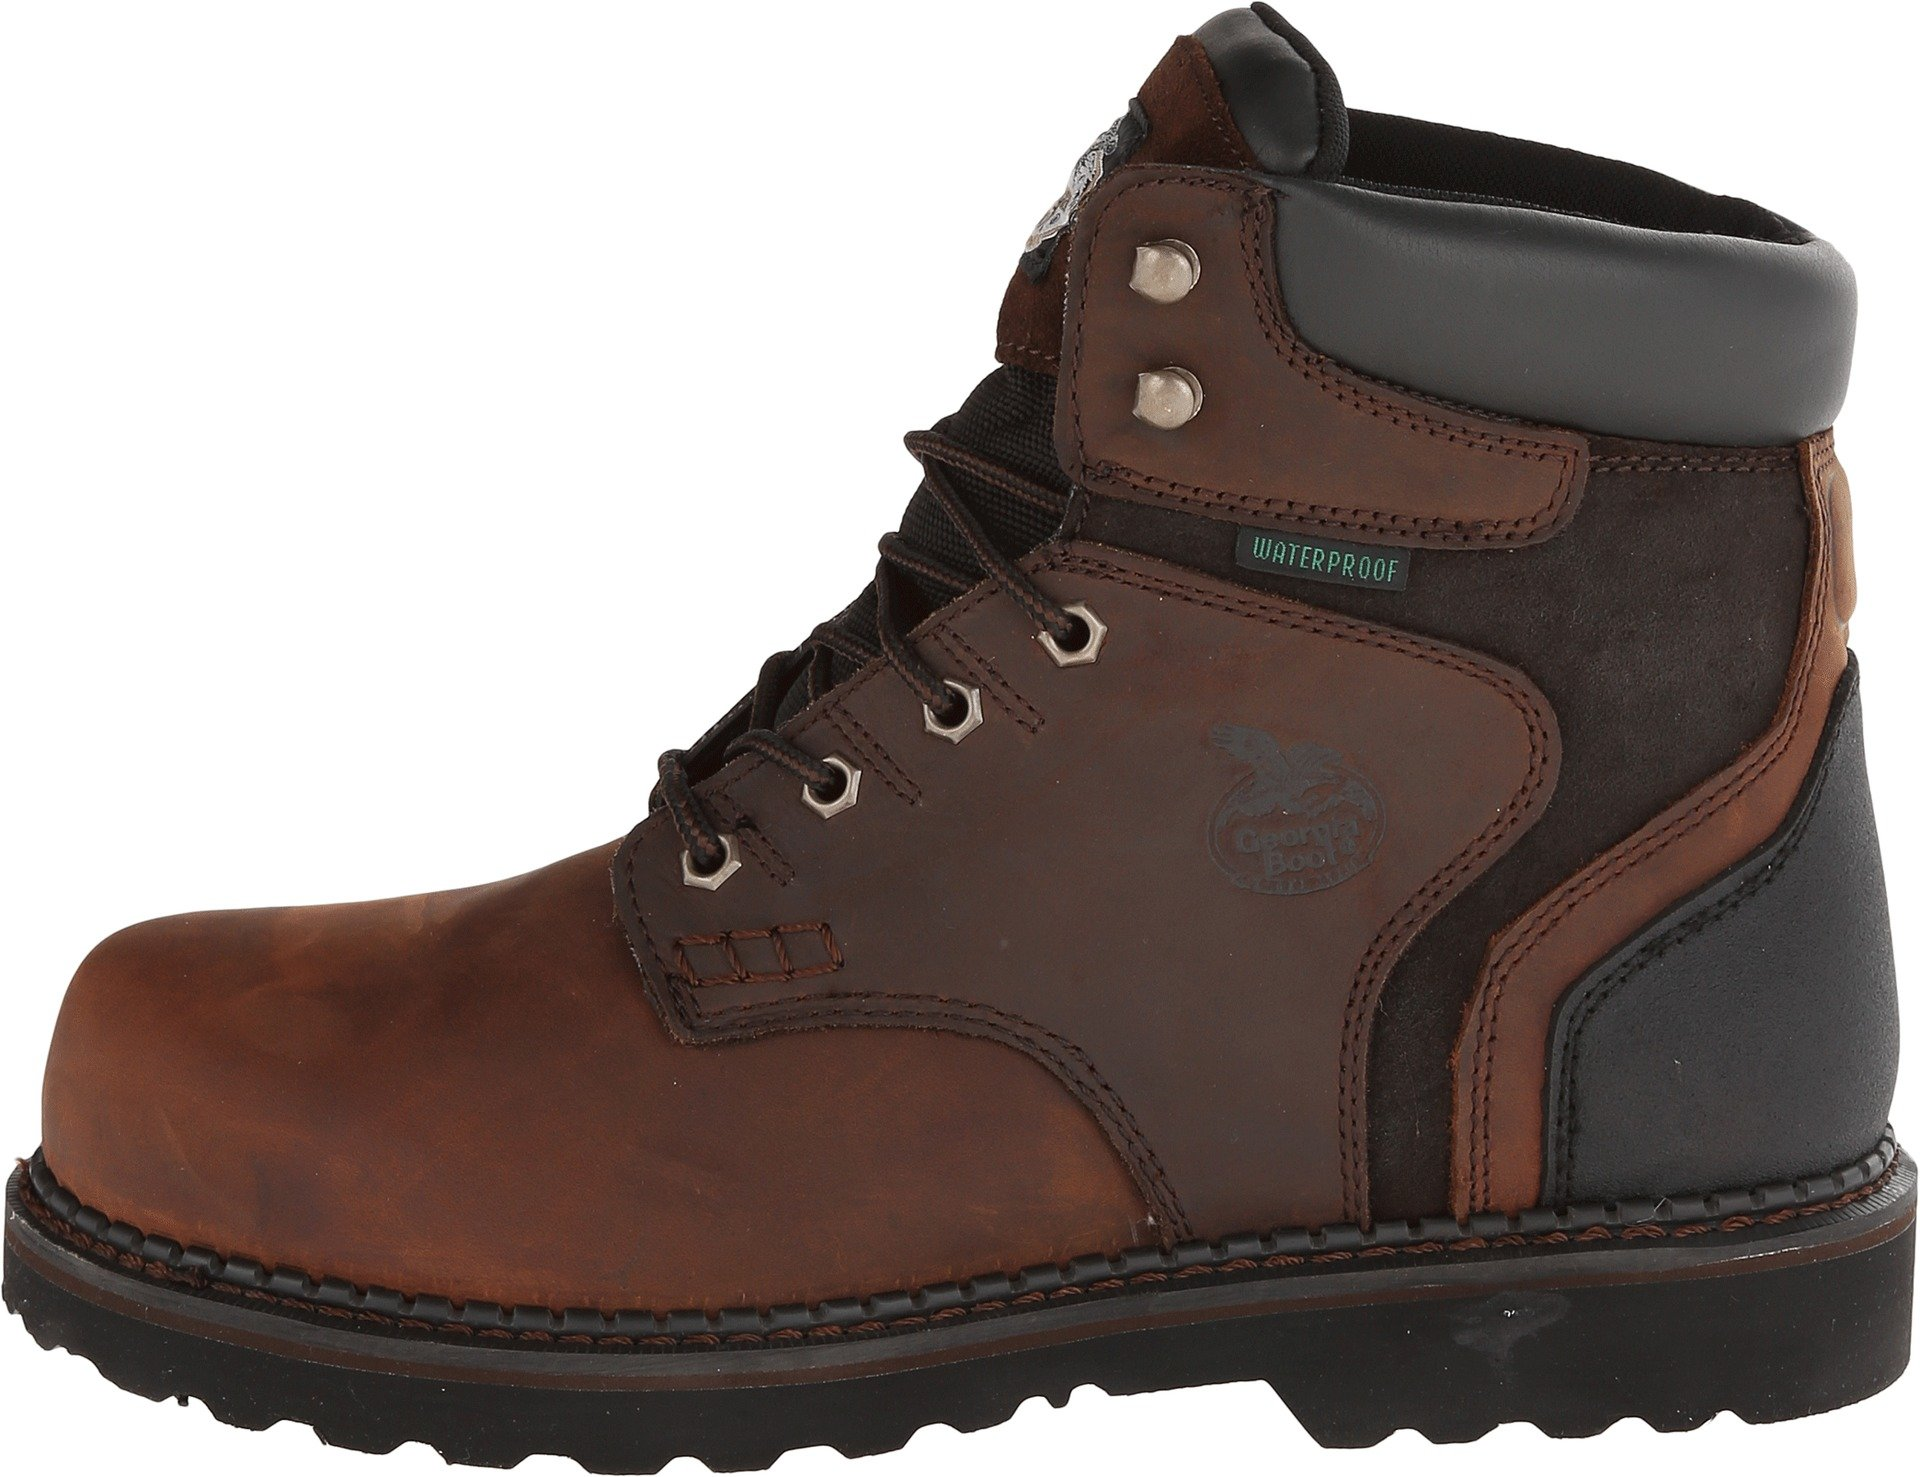 Georgia Boot Men's Brookville 6 Inch Work Shoe, Dark Brown, 10 M US by Georgia (Image #2)